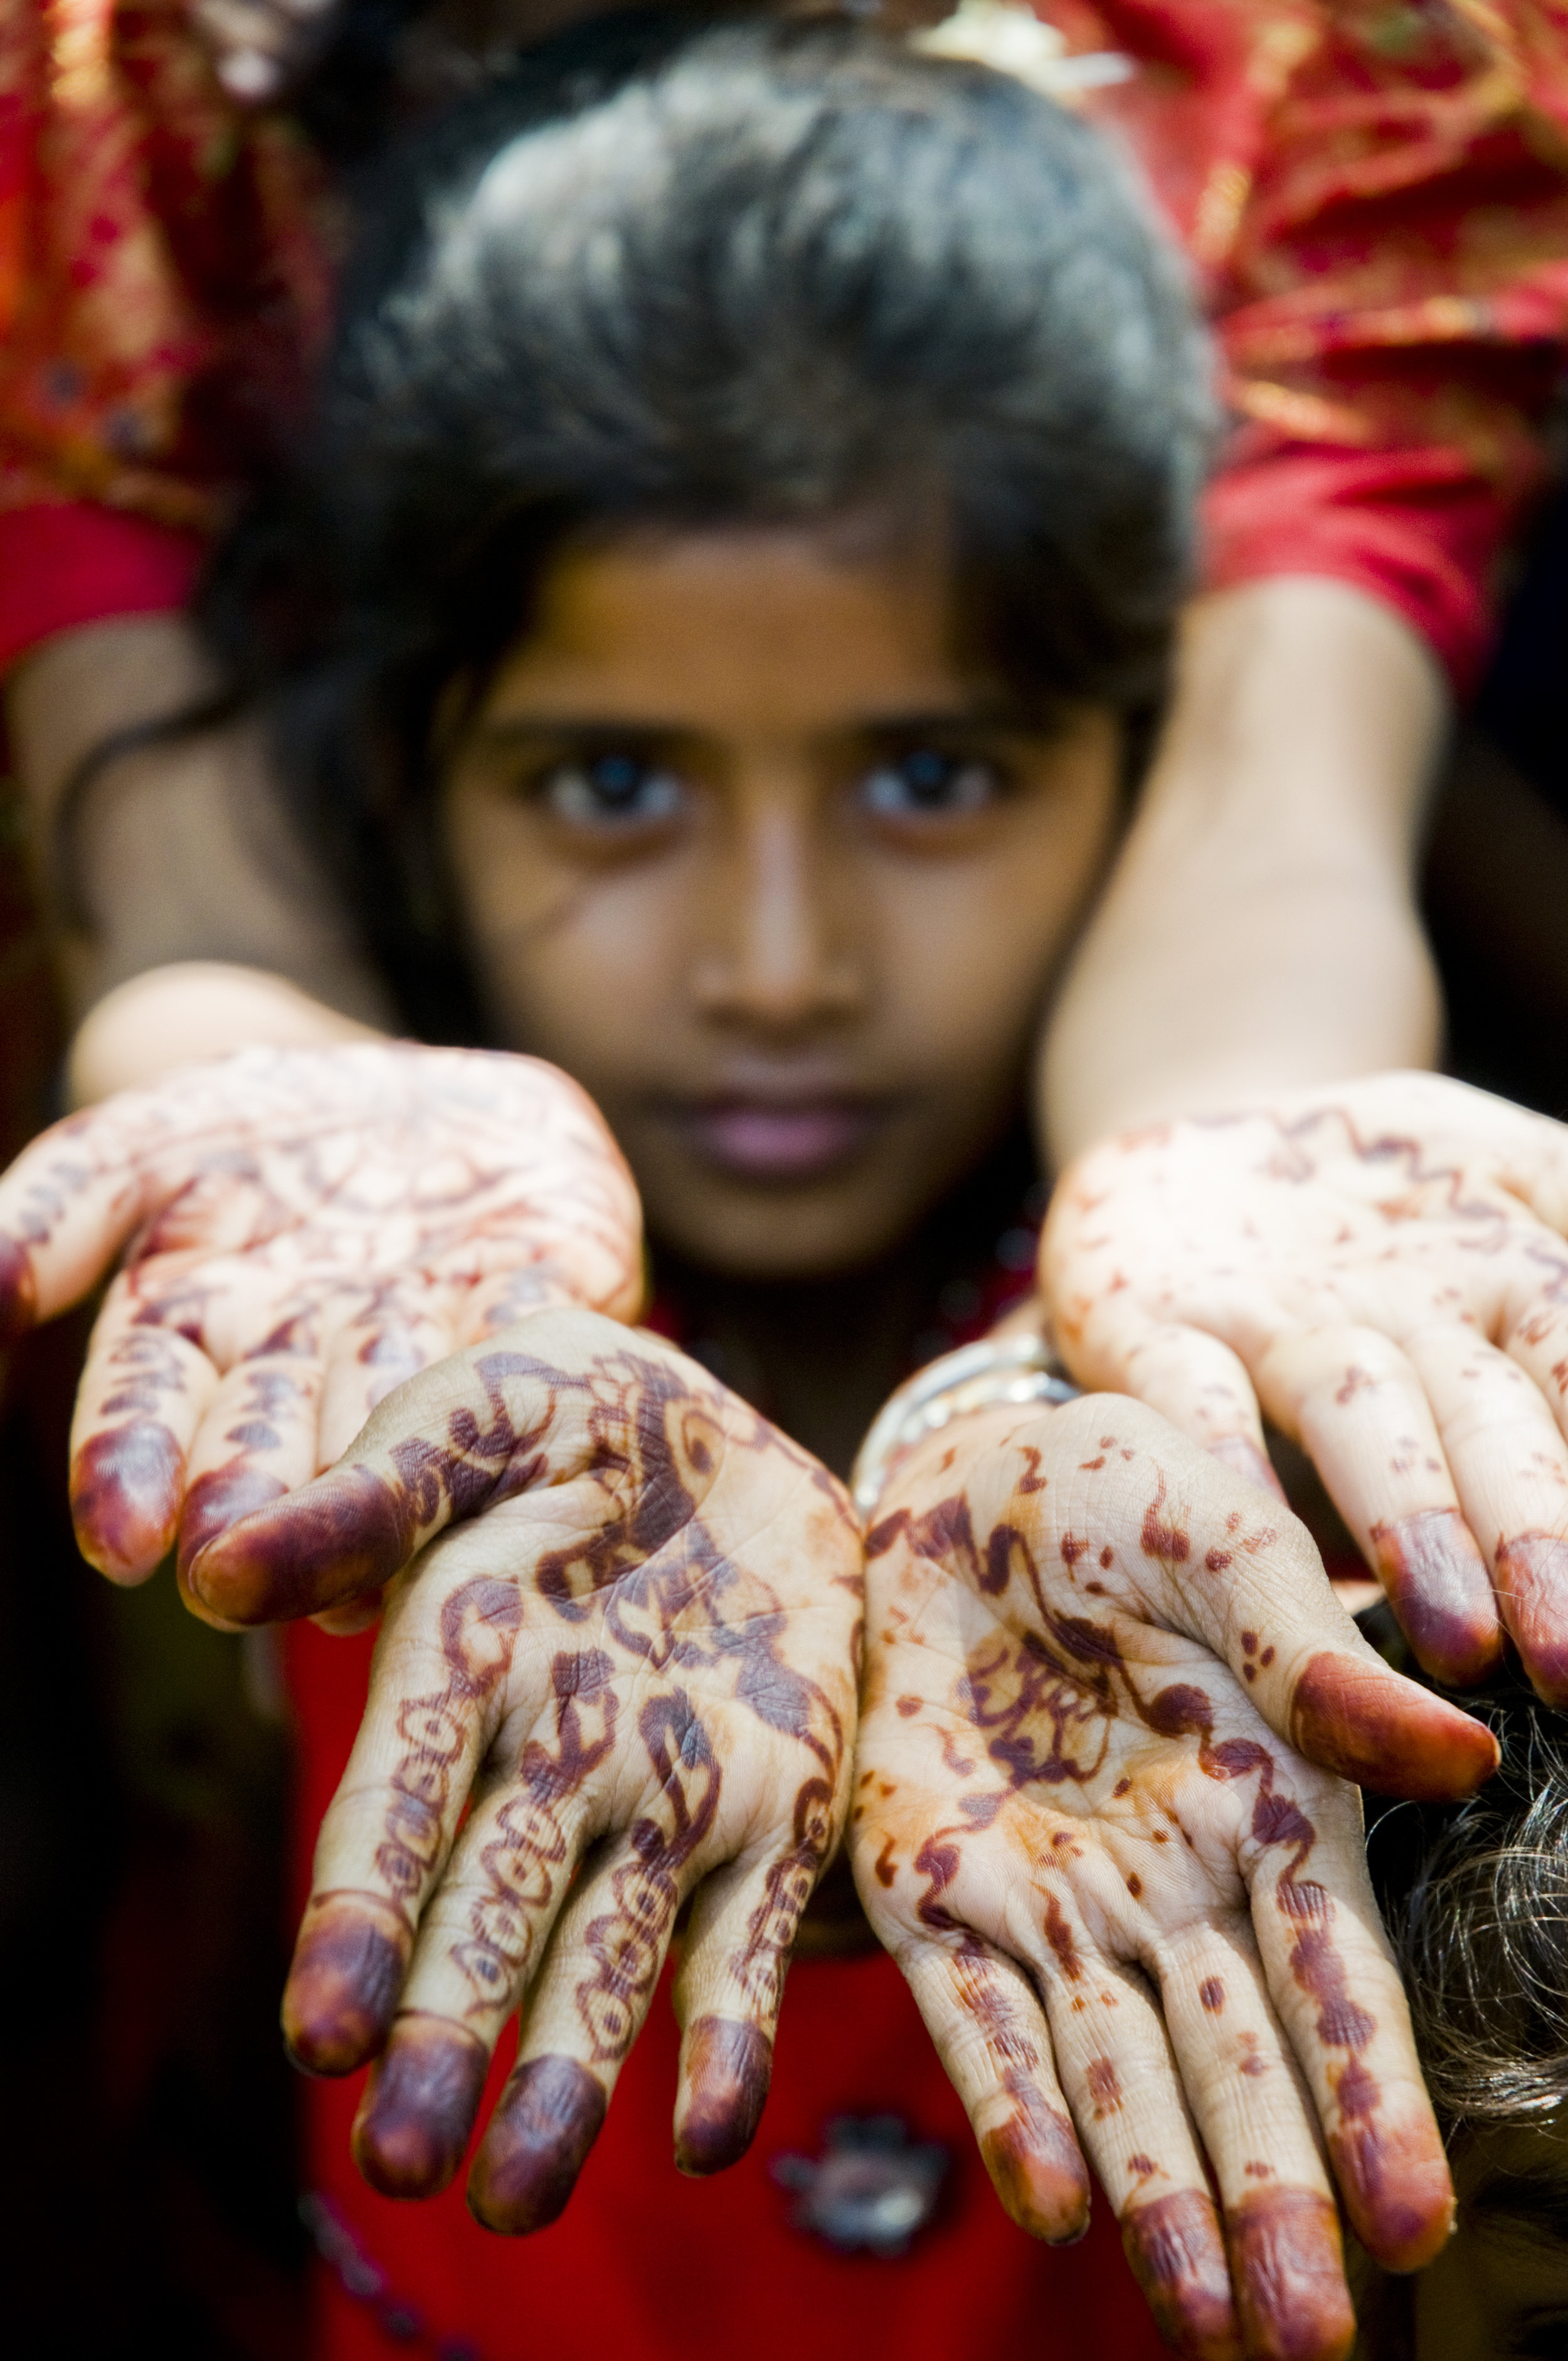 Travel Image ~ Henna Hands - Bombay, IndiaThe city of Bombay bustles with life. North of the city center lies some quiet havens where space exists for your thoughts to abound as the waves of the Indian Ocean crash the shore. This girl and her mother live in one of these quiet havens that erupt into excitement during weddings and festivals. The henna on their hands is temporary but is part of intimate ritual and worn by the bride's family for her wedding. It is the writing of the ancient designs for the well wishes to the bride for a happy marriage and fulfillment of her dreams.